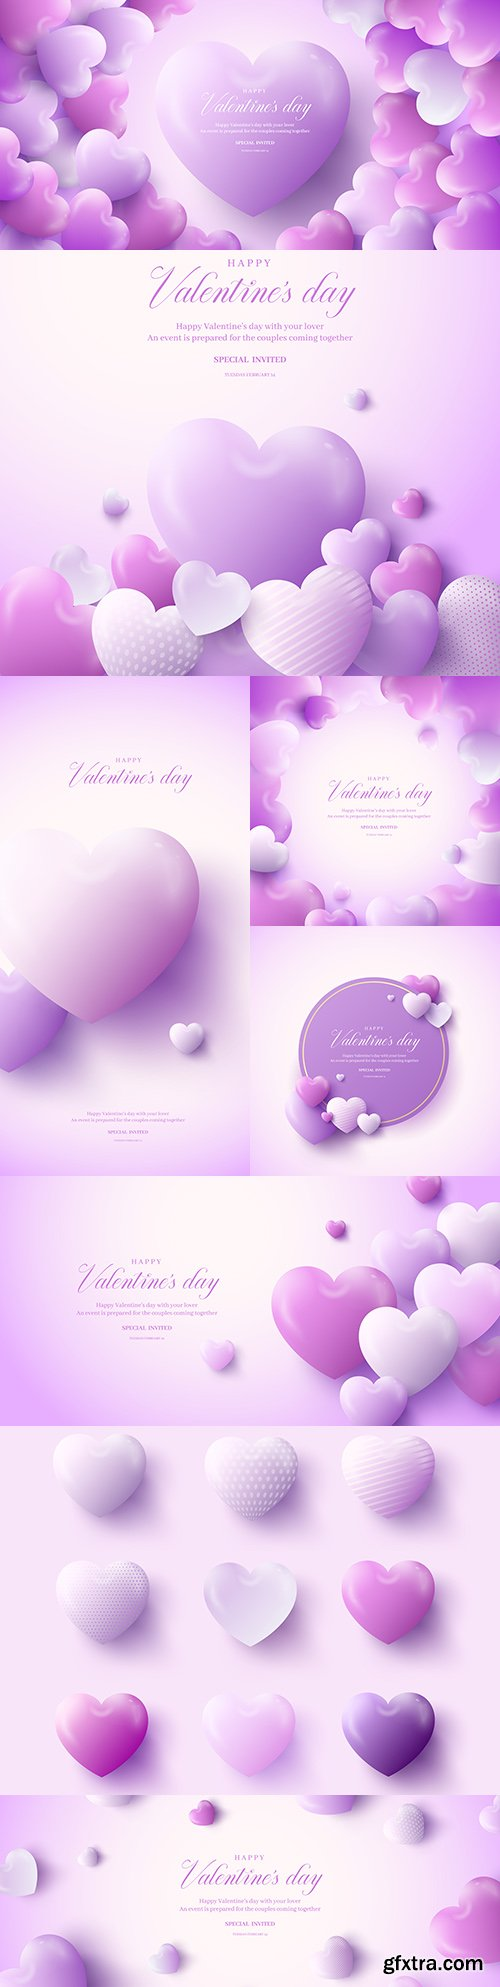 Valentine's Day in lilac design hearts and elements illustrations